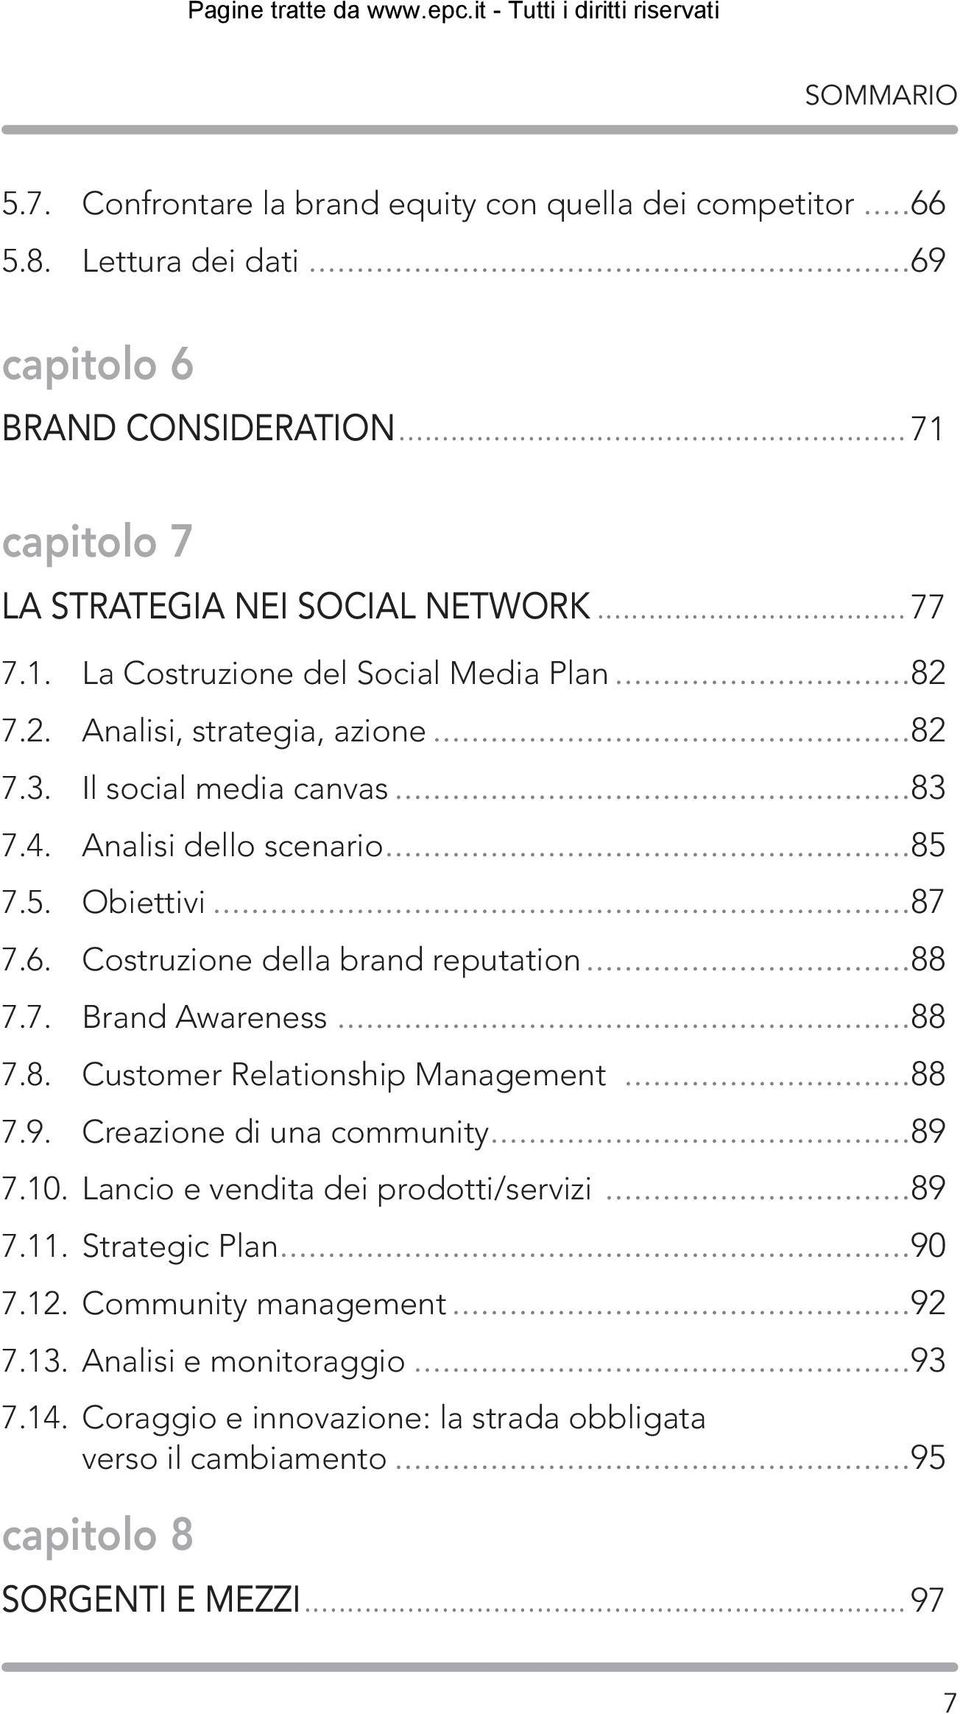 ..88 7.8. Customer Relationship Management...88 7.9. Creazione di una community...89 7.10. Lancio e vendita dei prodotti/servizi...89 7.11. Strategic Plan...90 7.12. Community management.